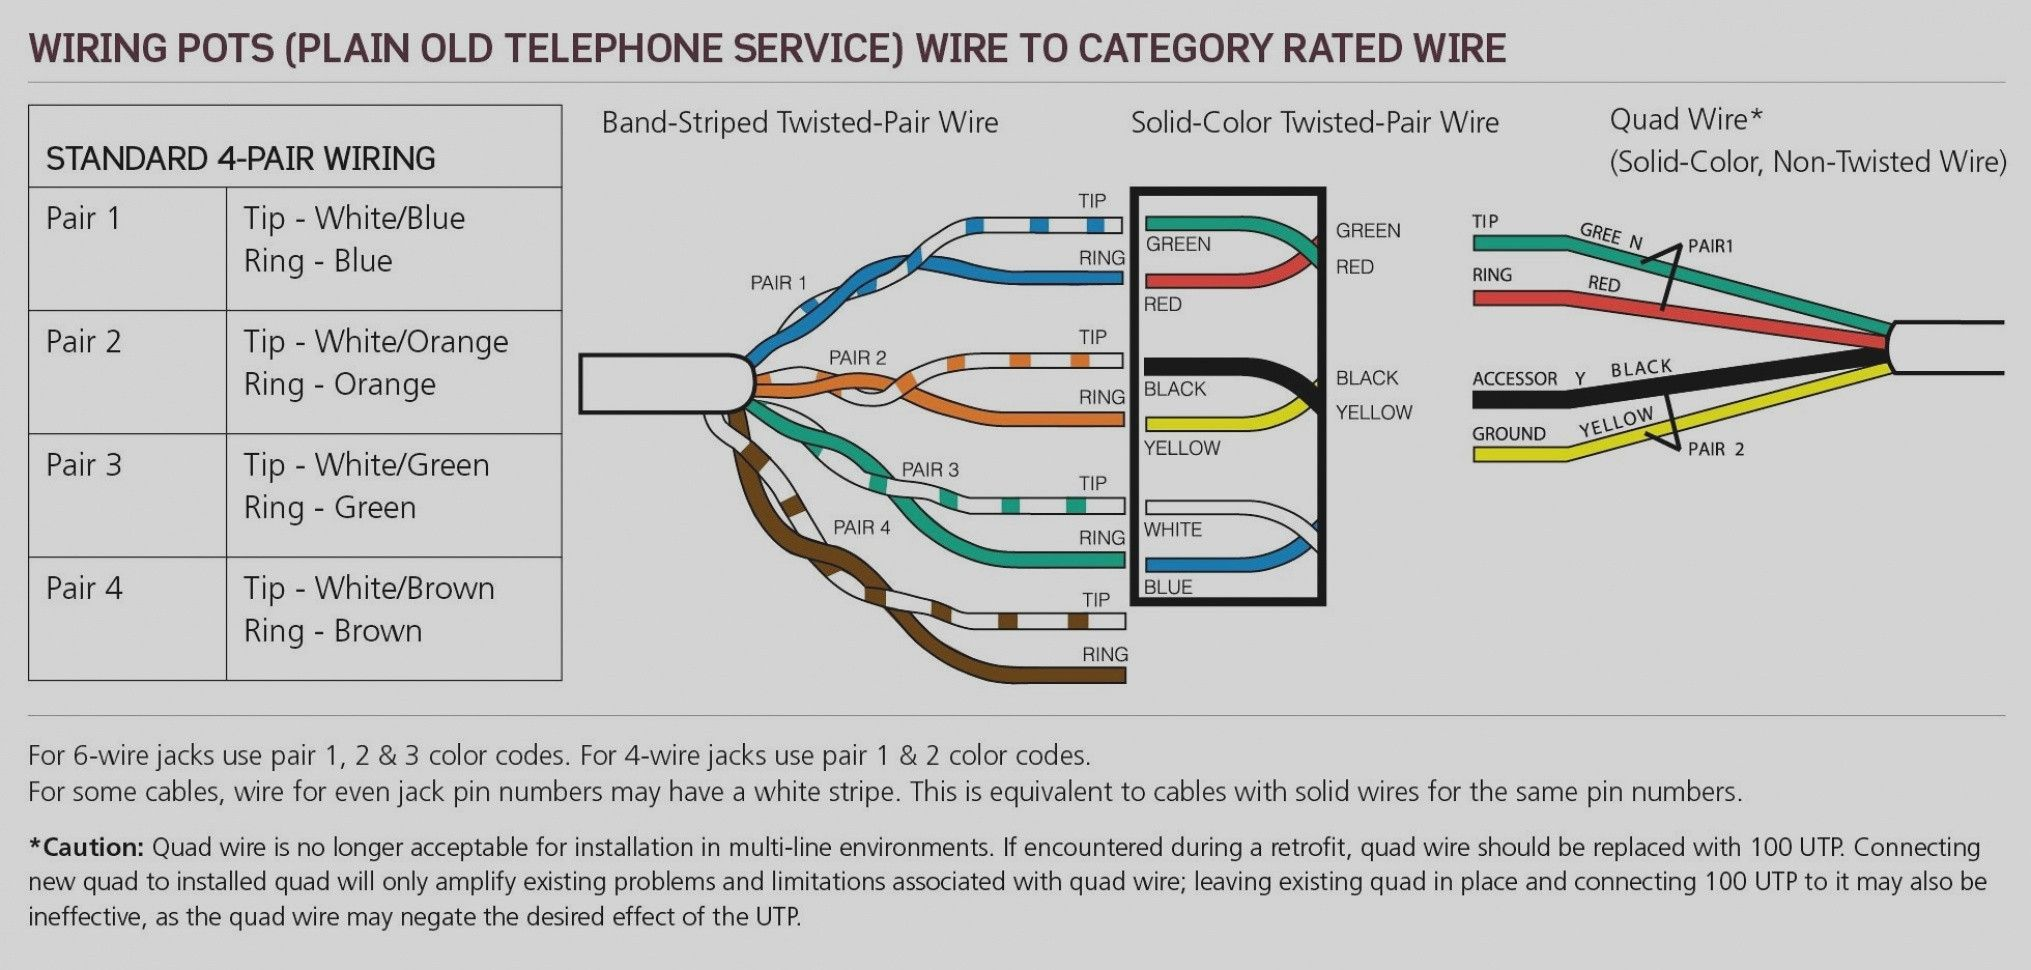 unique power point wiring diagram australia diagramsample Phone Cable Wiring Diagram Australia